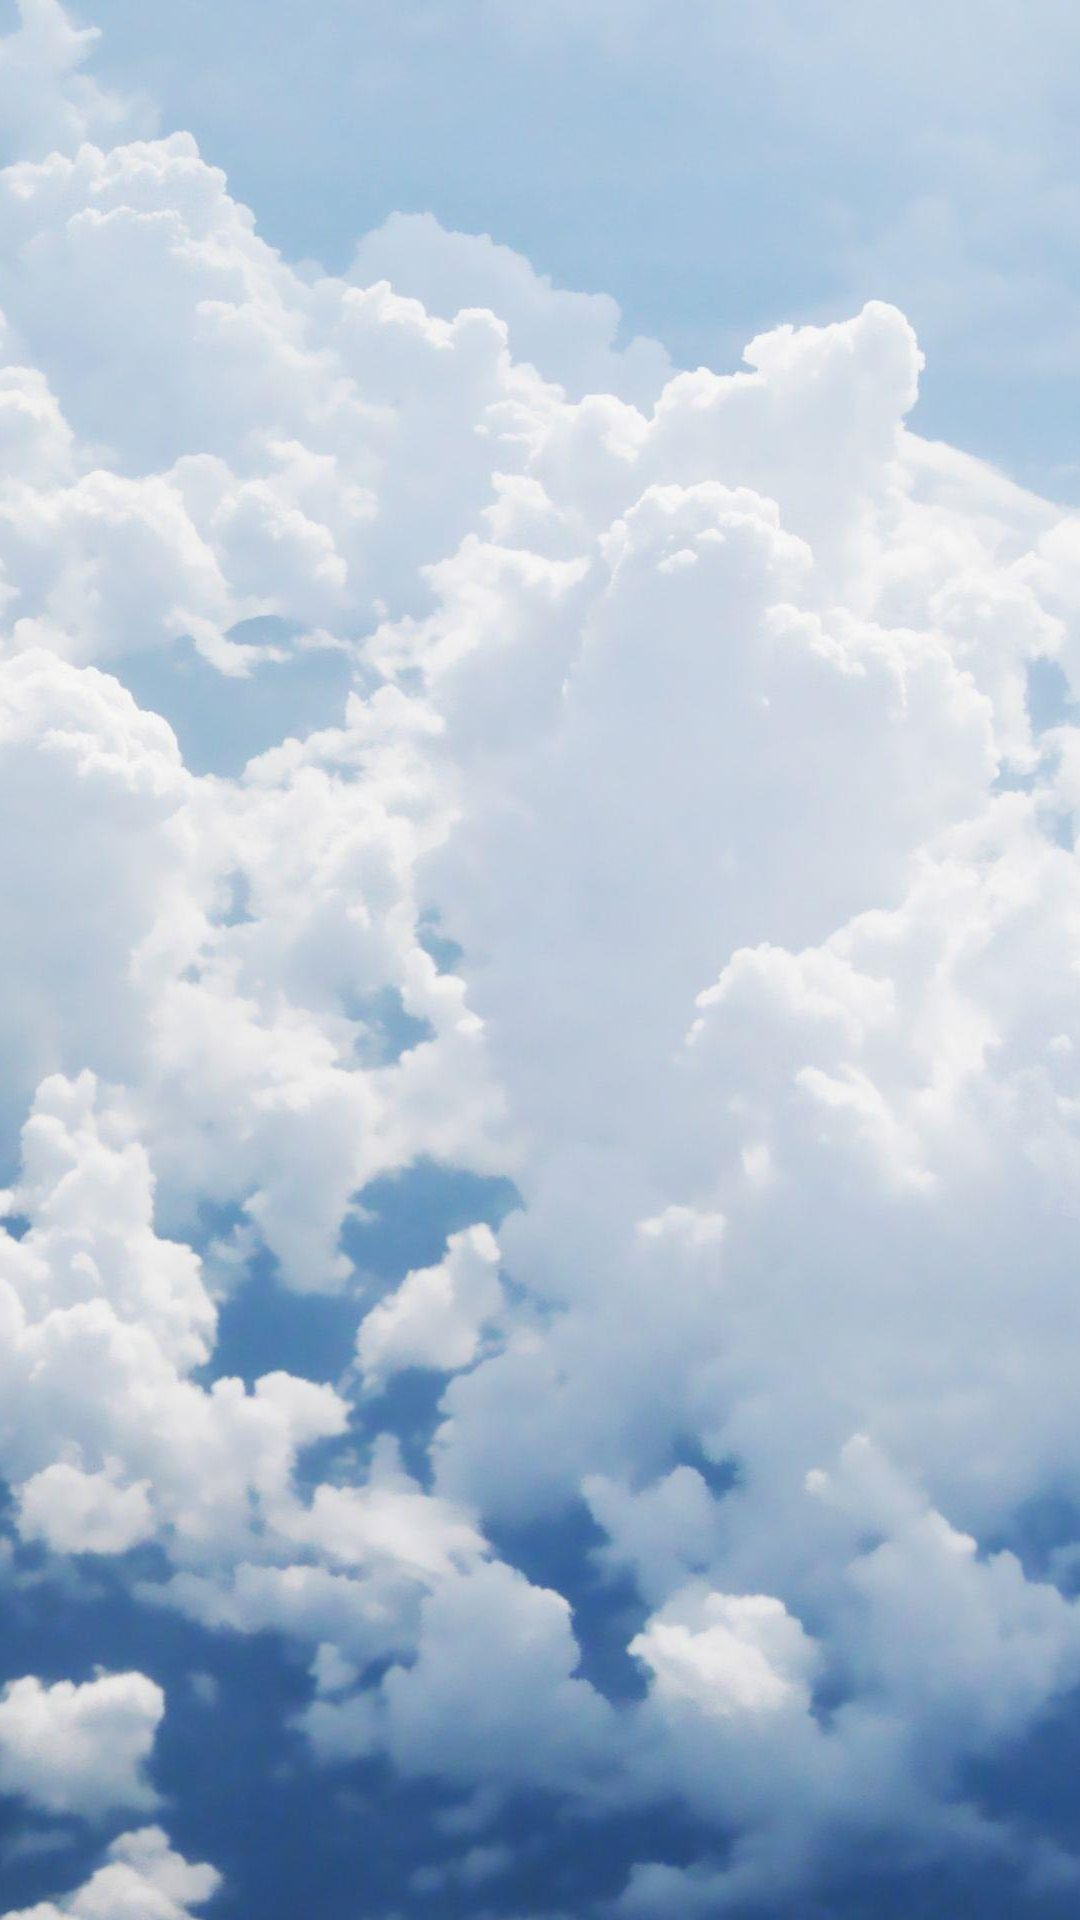 Htc One M8 Wallpaper Hd Puffy Clouds Best Htc One Wallpapers Free And Easy To